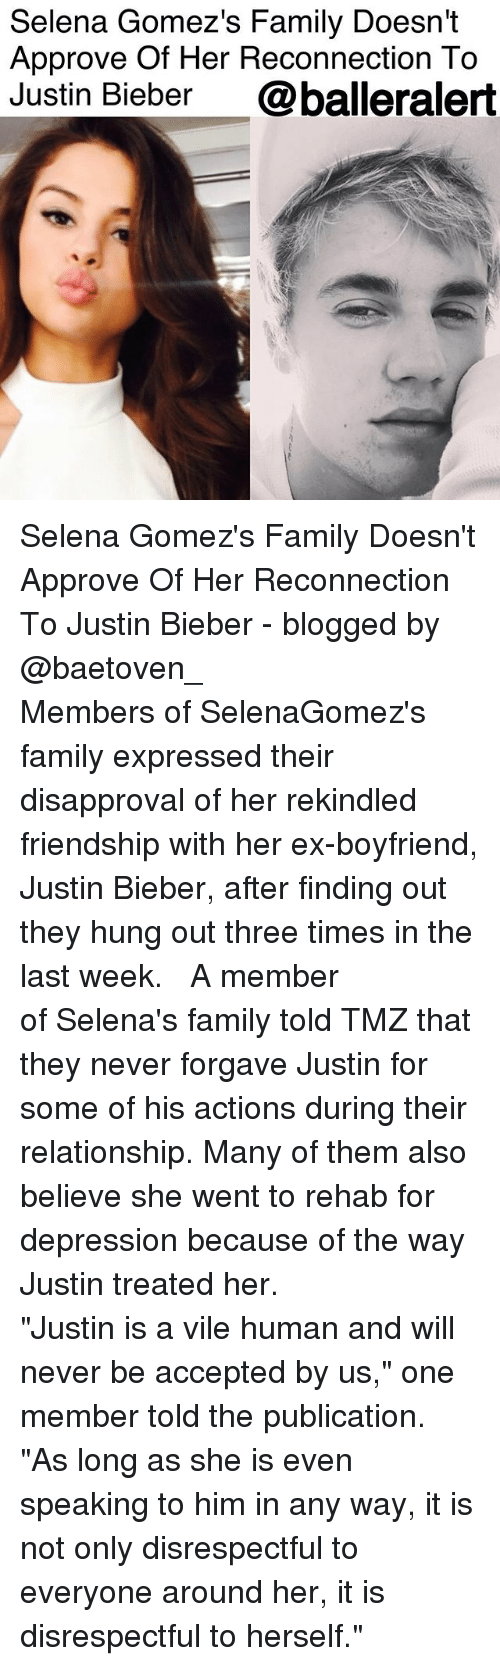 "Disapproval: Selena Gomez's Family Doesn't  Approve Of Her Reconnection To  Justin Bieber @balleralert Selena Gomez's Family Doesn't Approve Of Her Reconnection To Justin Bieber - blogged by @baetoven_ ⠀⠀⠀⠀⠀⠀⠀ ⠀⠀⠀⠀⠀⠀⠀ Members of SelenaGomez's family expressed their disapproval of her rekindled friendship with her ex-boyfriend, Justin Bieber, after finding out they hung out three times in the last week. ⠀⠀⠀⠀⠀⠀⠀ ⠀⠀⠀⠀⠀⠀⠀ A member of Selena's family told TMZ that they never forgave Justin for some of his actions during their relationship. Many of them also believe she went to rehab for depression because of the way Justin treated her. ⠀⠀⠀⠀⠀⠀⠀ ⠀⠀⠀⠀⠀⠀⠀ ""Justin is a vile human and will never be accepted by us,"" one member told the publication. ""As long as she is even speaking to him in any way, it is not only disrespectful to everyone around her, it is disrespectful to herself."" ⠀⠀⠀⠀⠀⠀⠀"